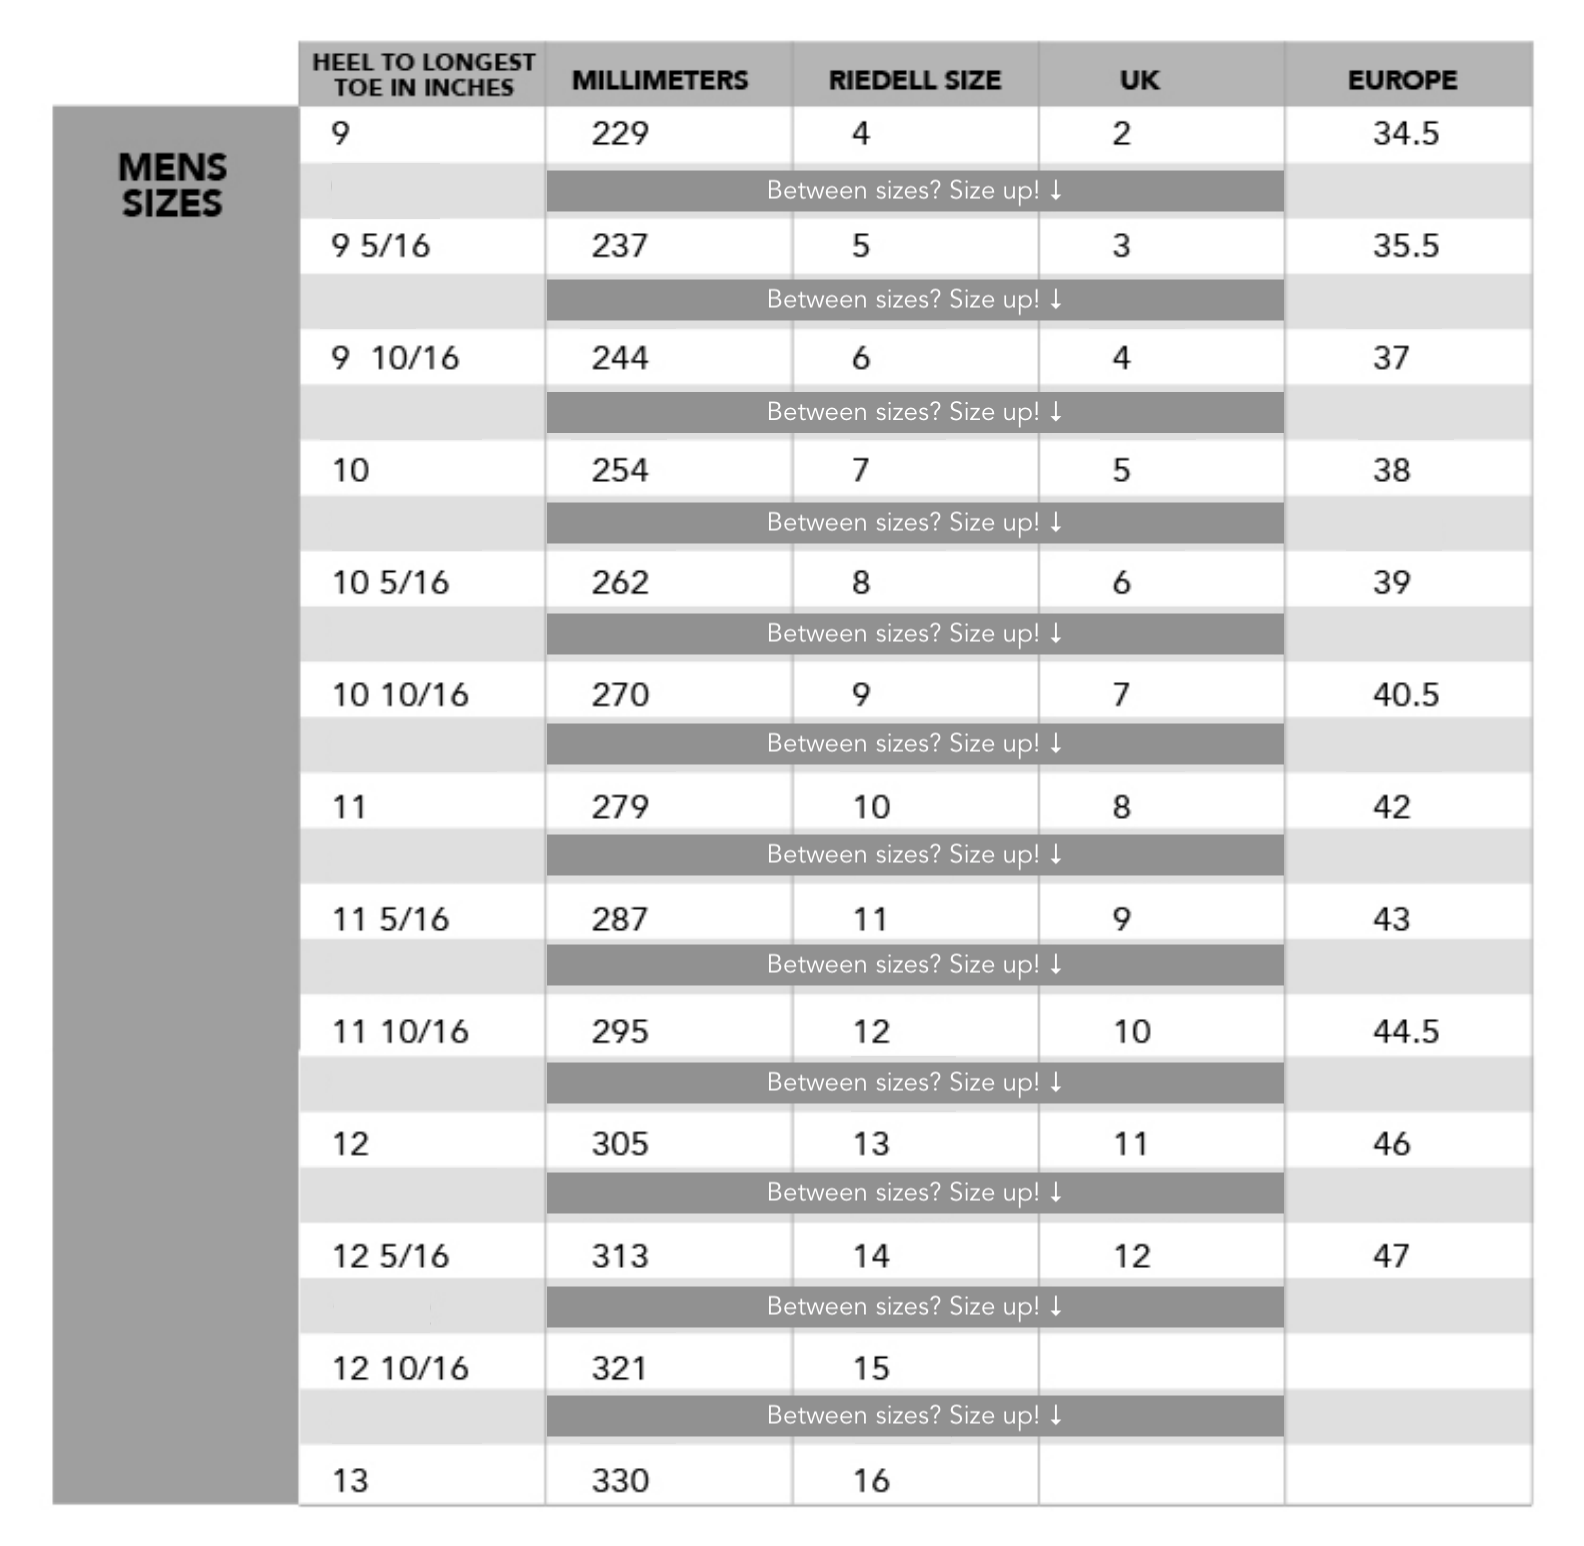 Riedell High top boots sizing